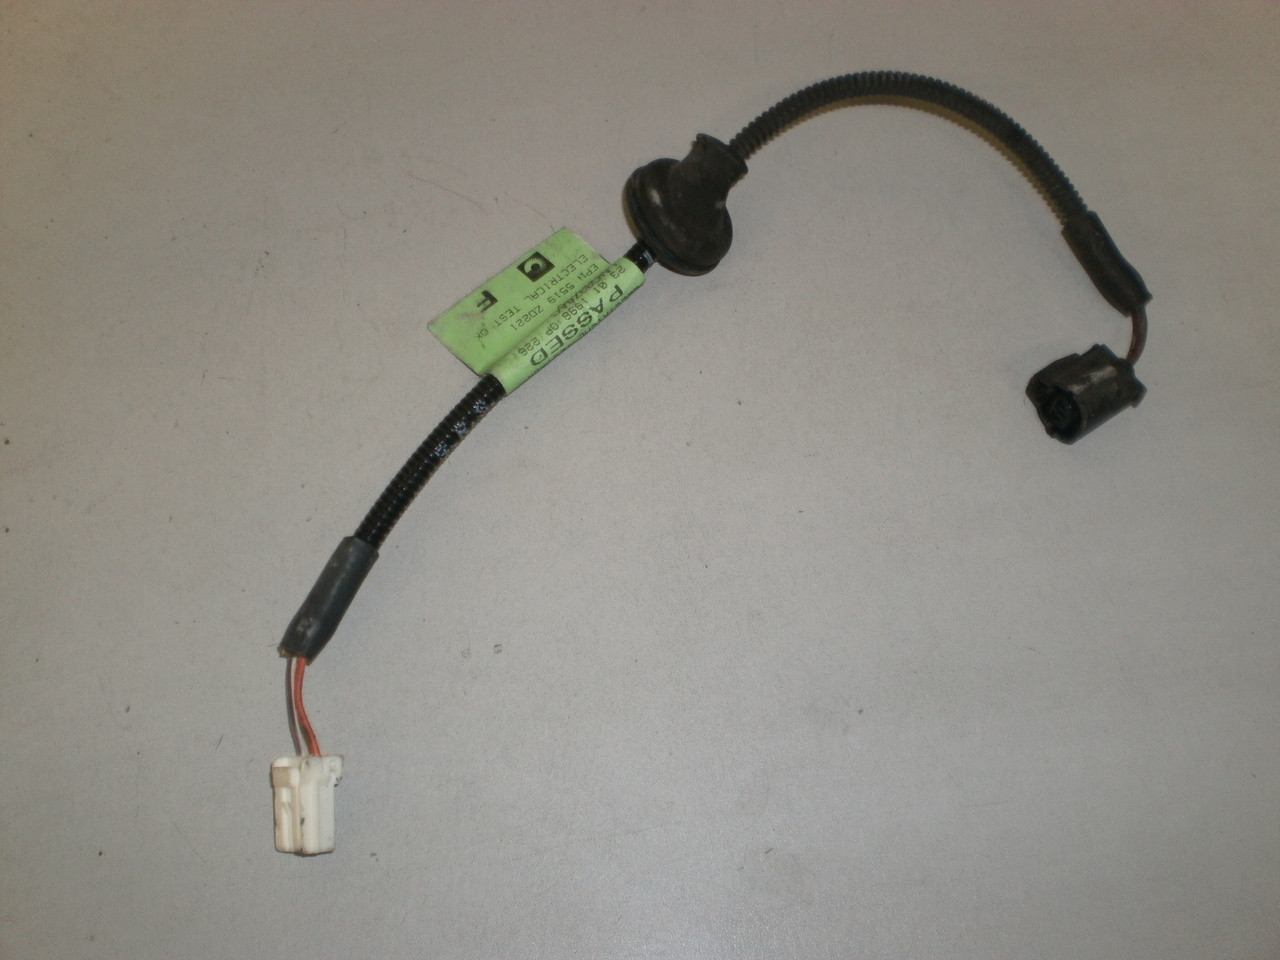 medium resolution of  jaguar xj8 vanden plas canister close valve wire harness price 39 98 image 1